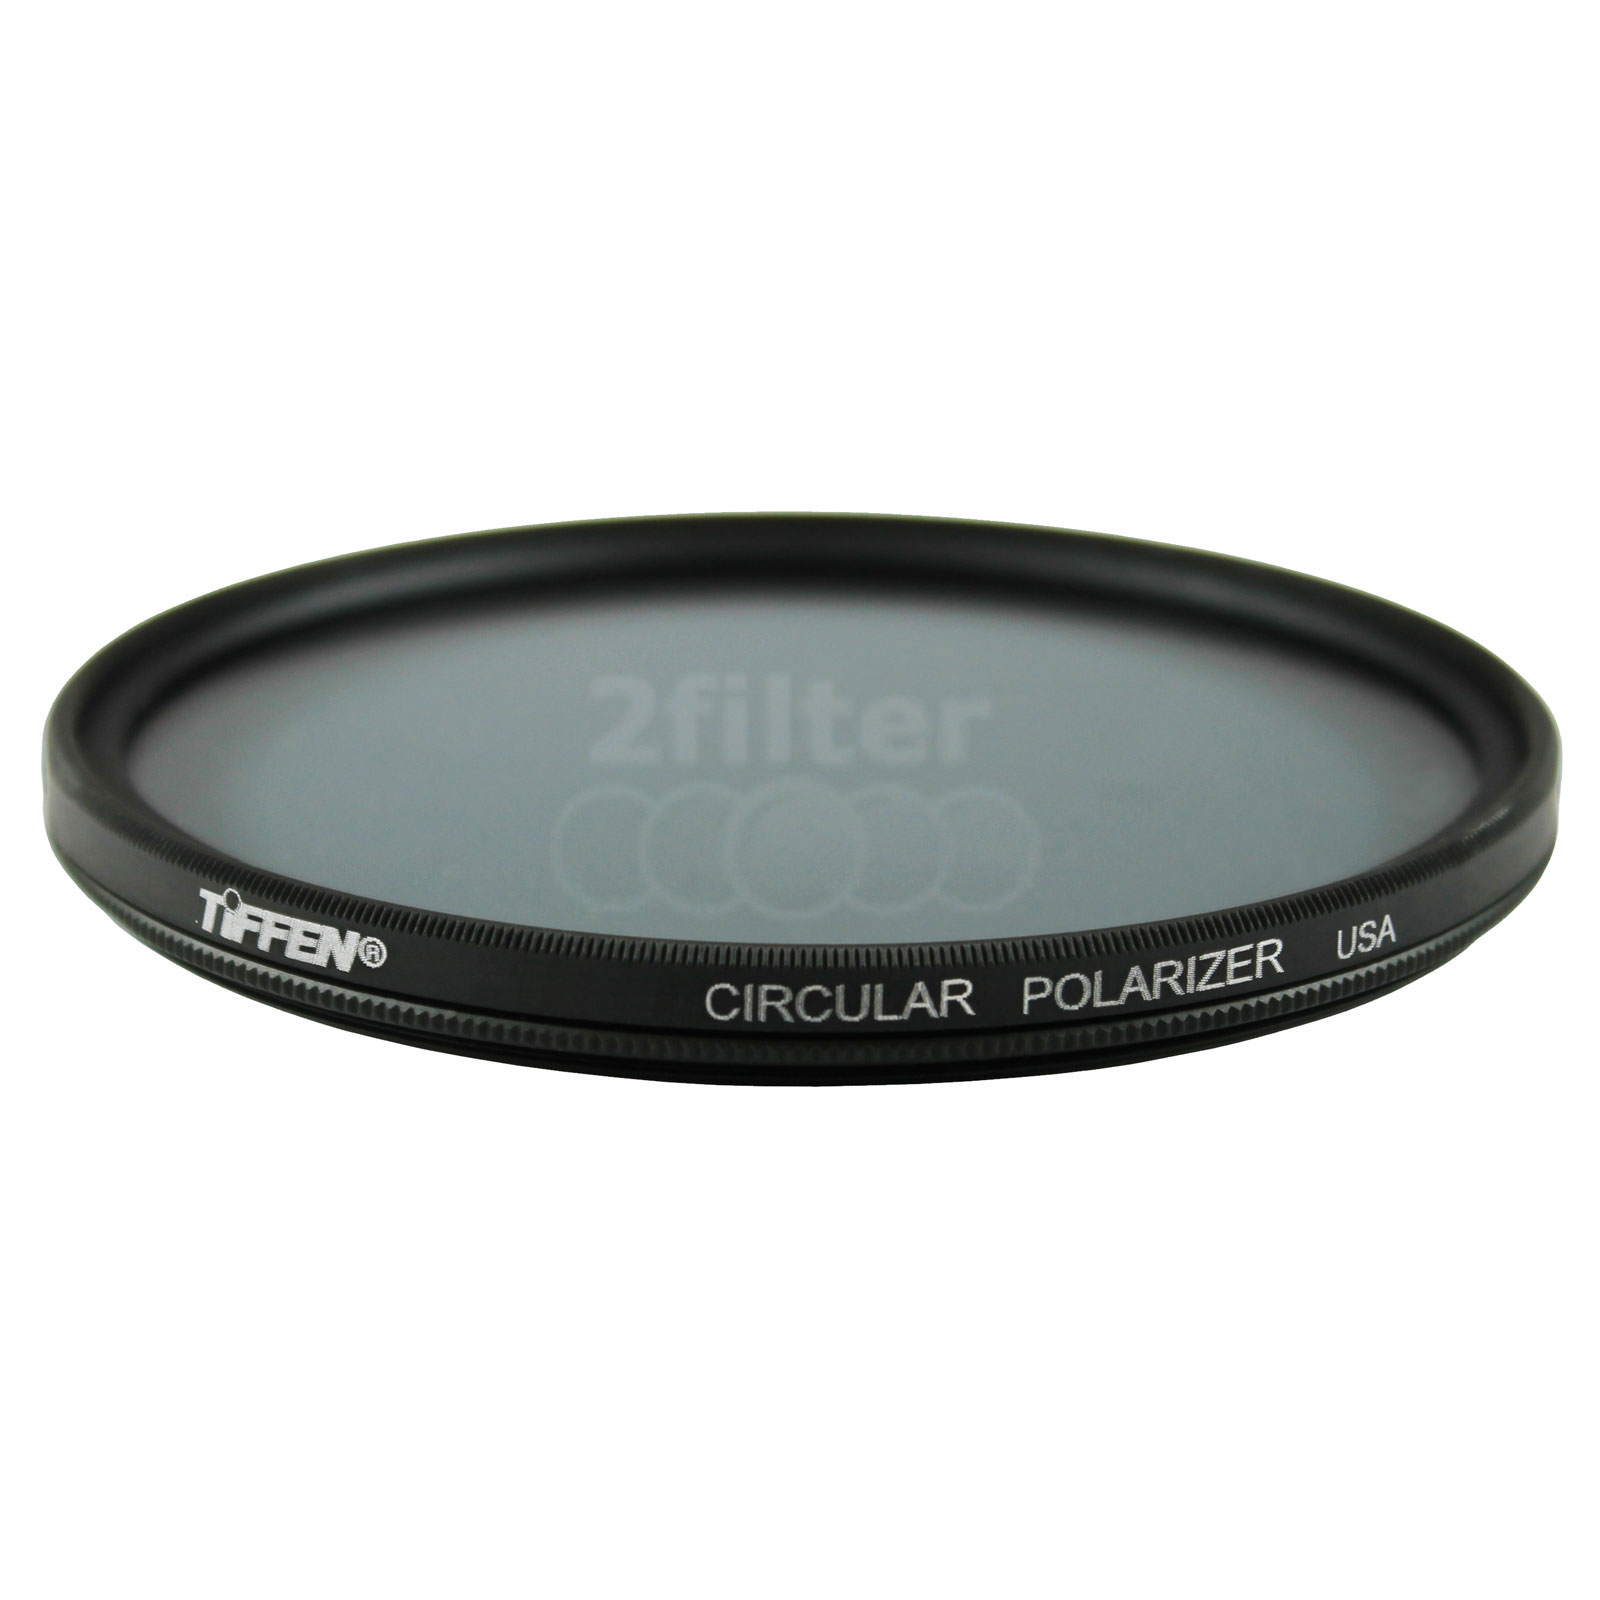 Standard-Circular-Polarizer-Filter-Side-View